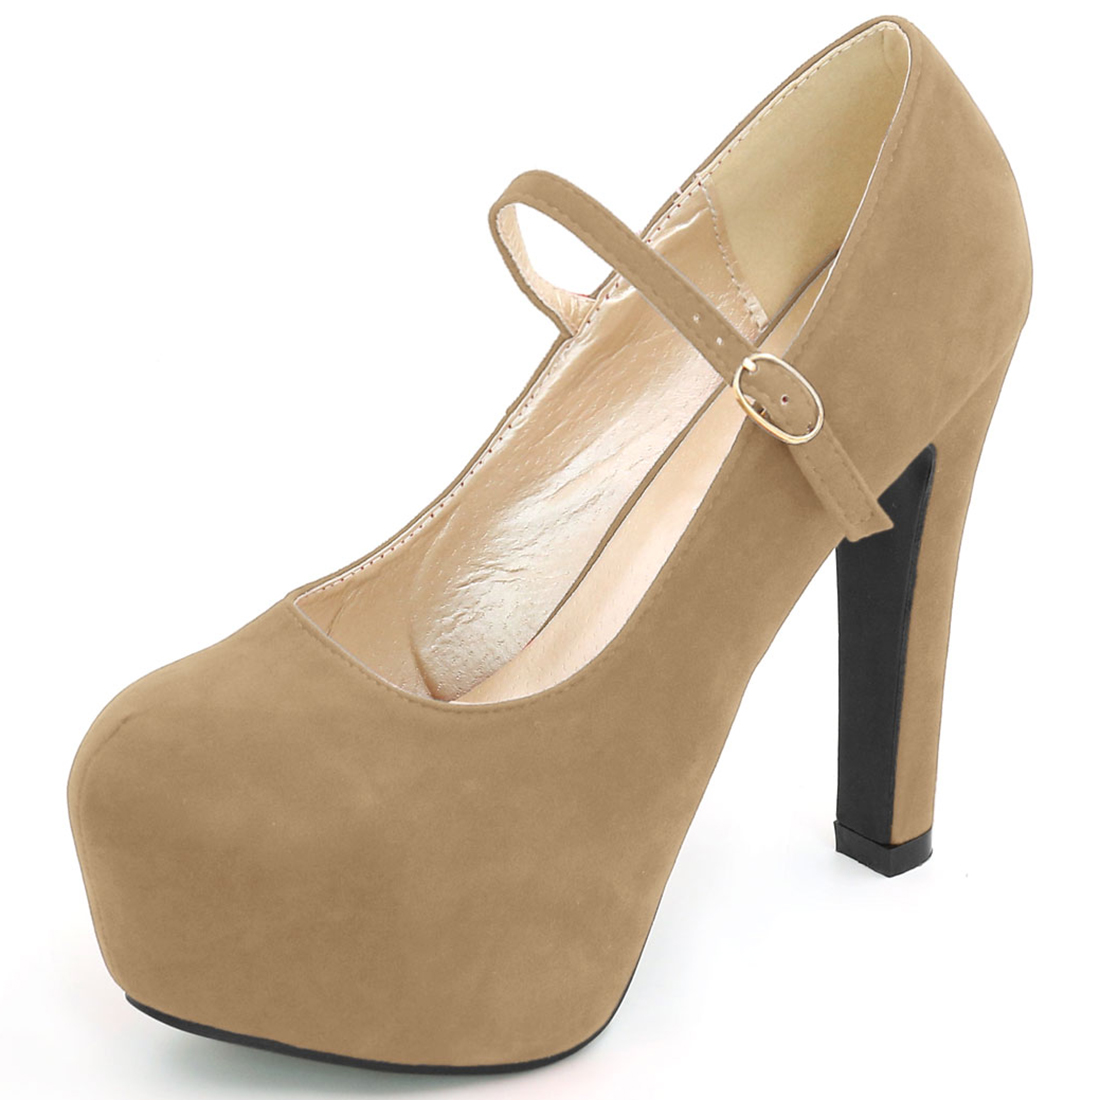 Woman Rounded Toe Chunky Platform Buckle Strap Pumps Dark Beige US 10